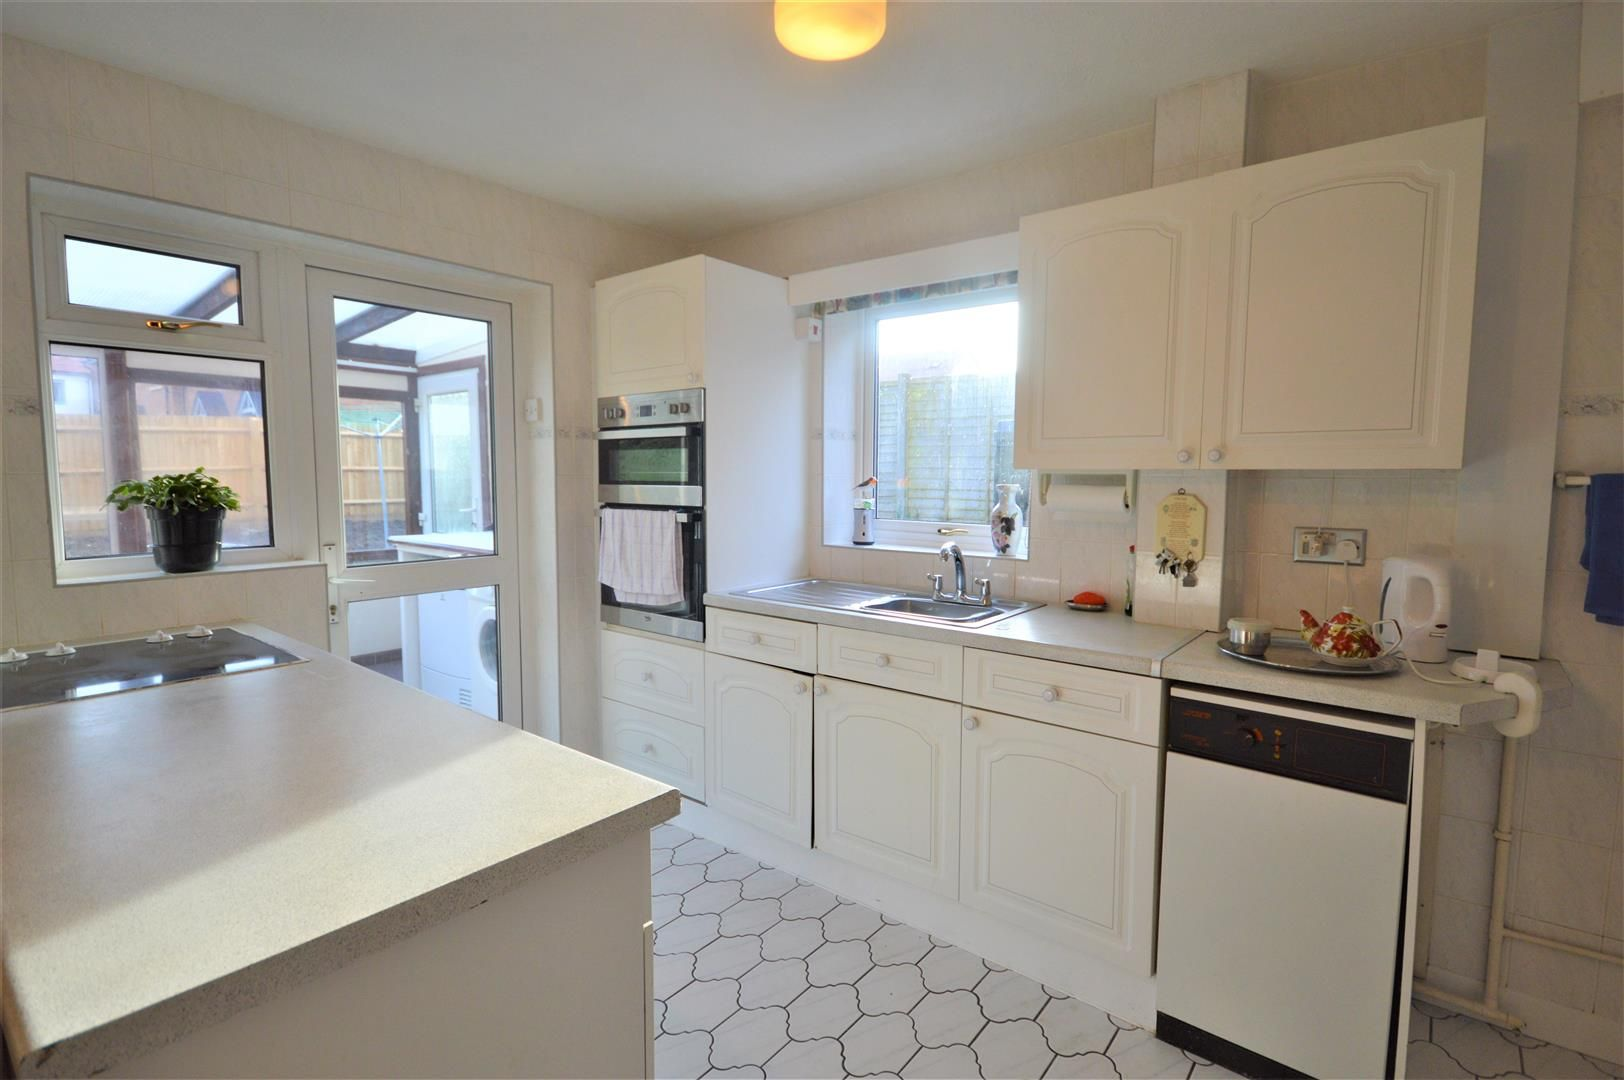 4 bed detached for sale in Weobley  - Property Image 4